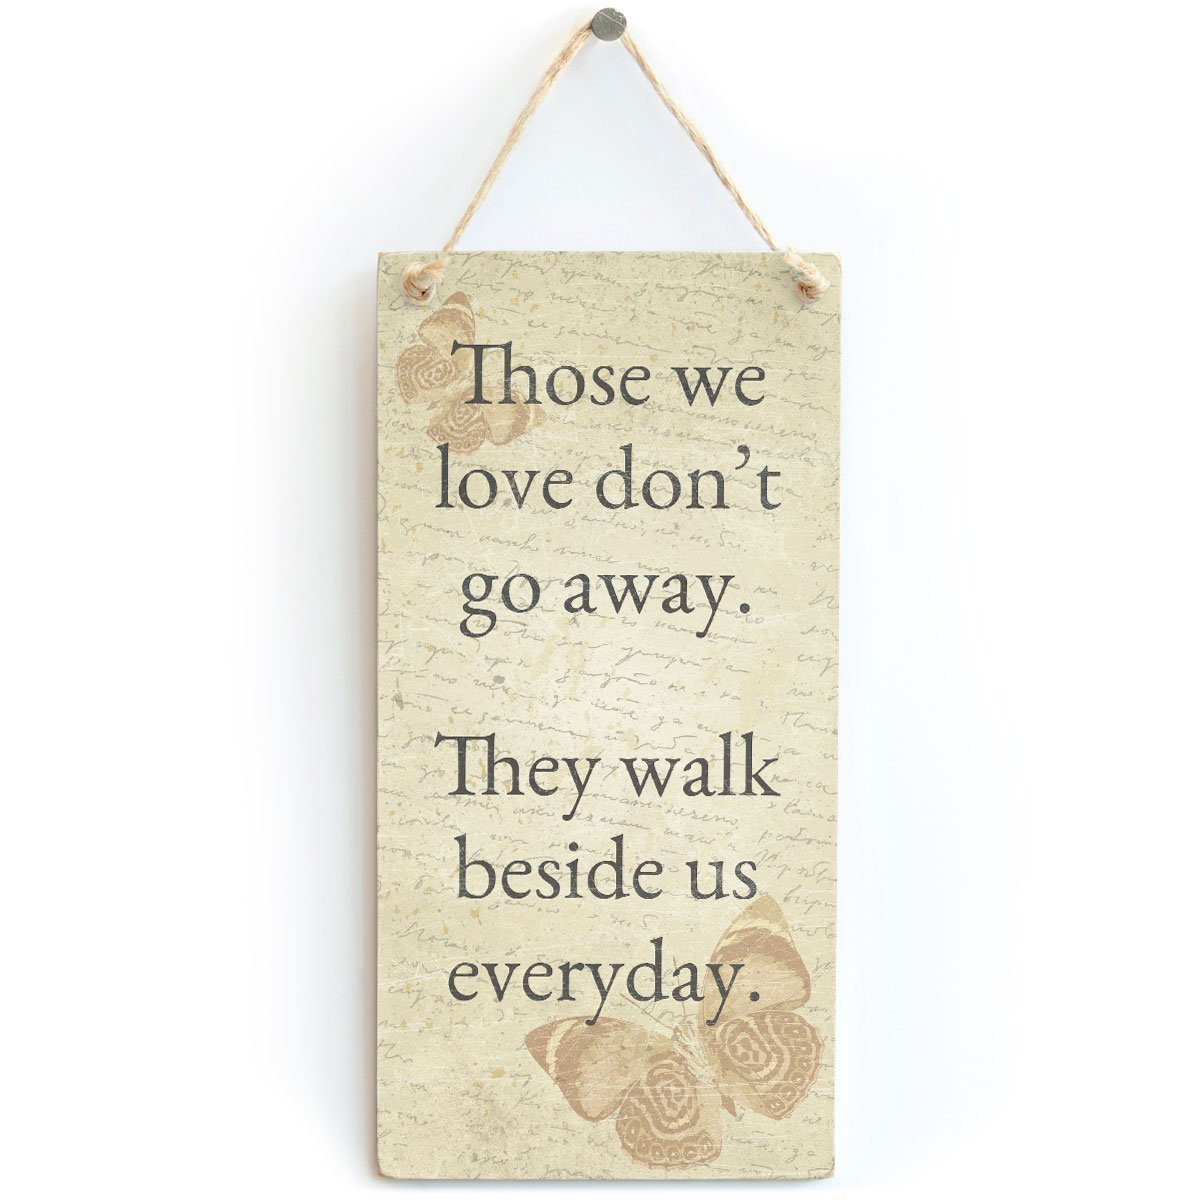 Meijiafei Those we love don't go away. They walk beside us everyday. - Beautiful Sympathy Gift Signs Keepsake Home Accessory Sign 10''x5''